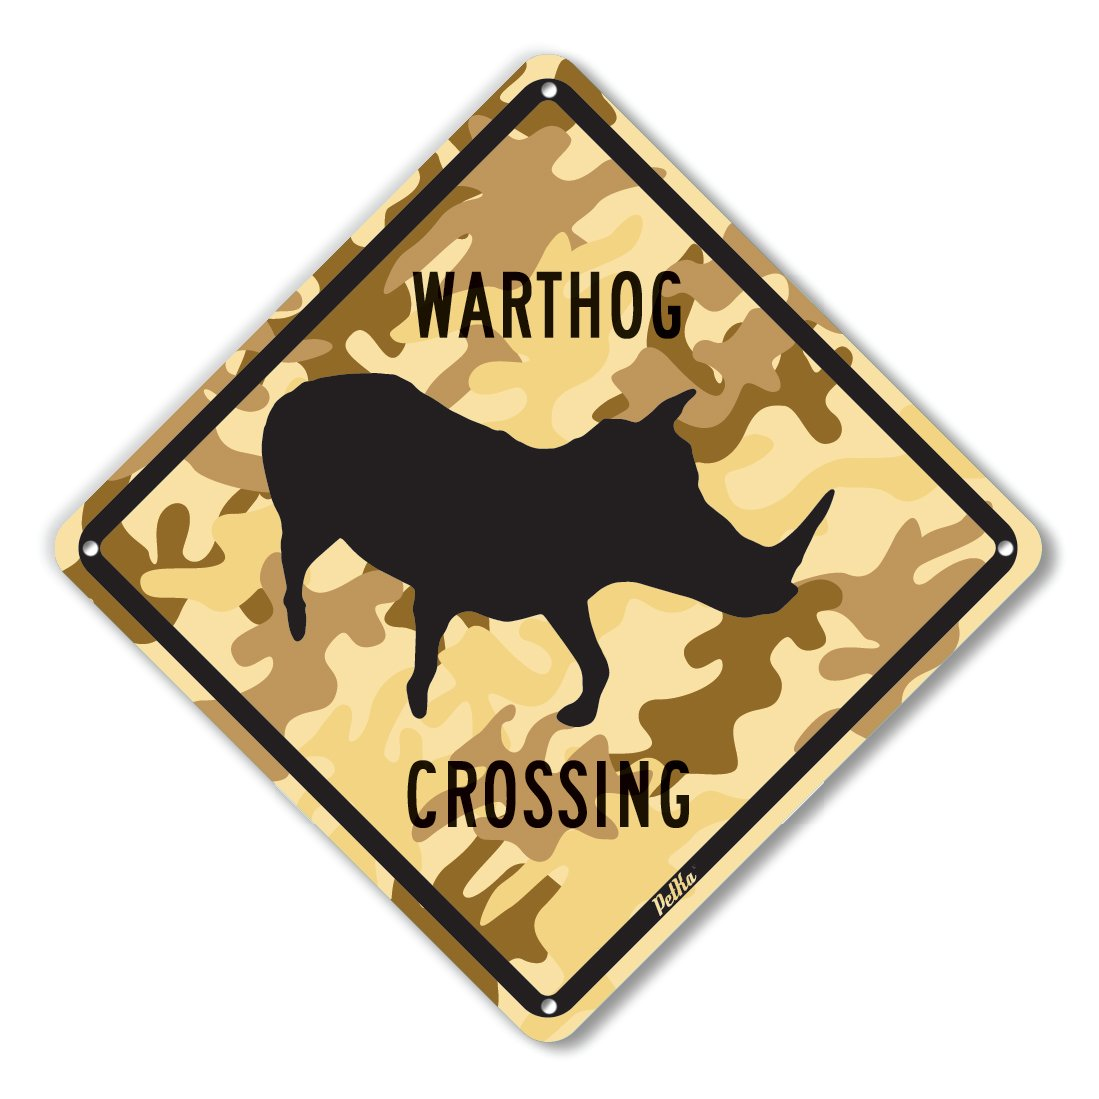 PetKa Signs and Graphics PKAC-0055-NA/_10x10Warthog Crossing Aluminum Sign 10 x 10 Black on Desert Camo